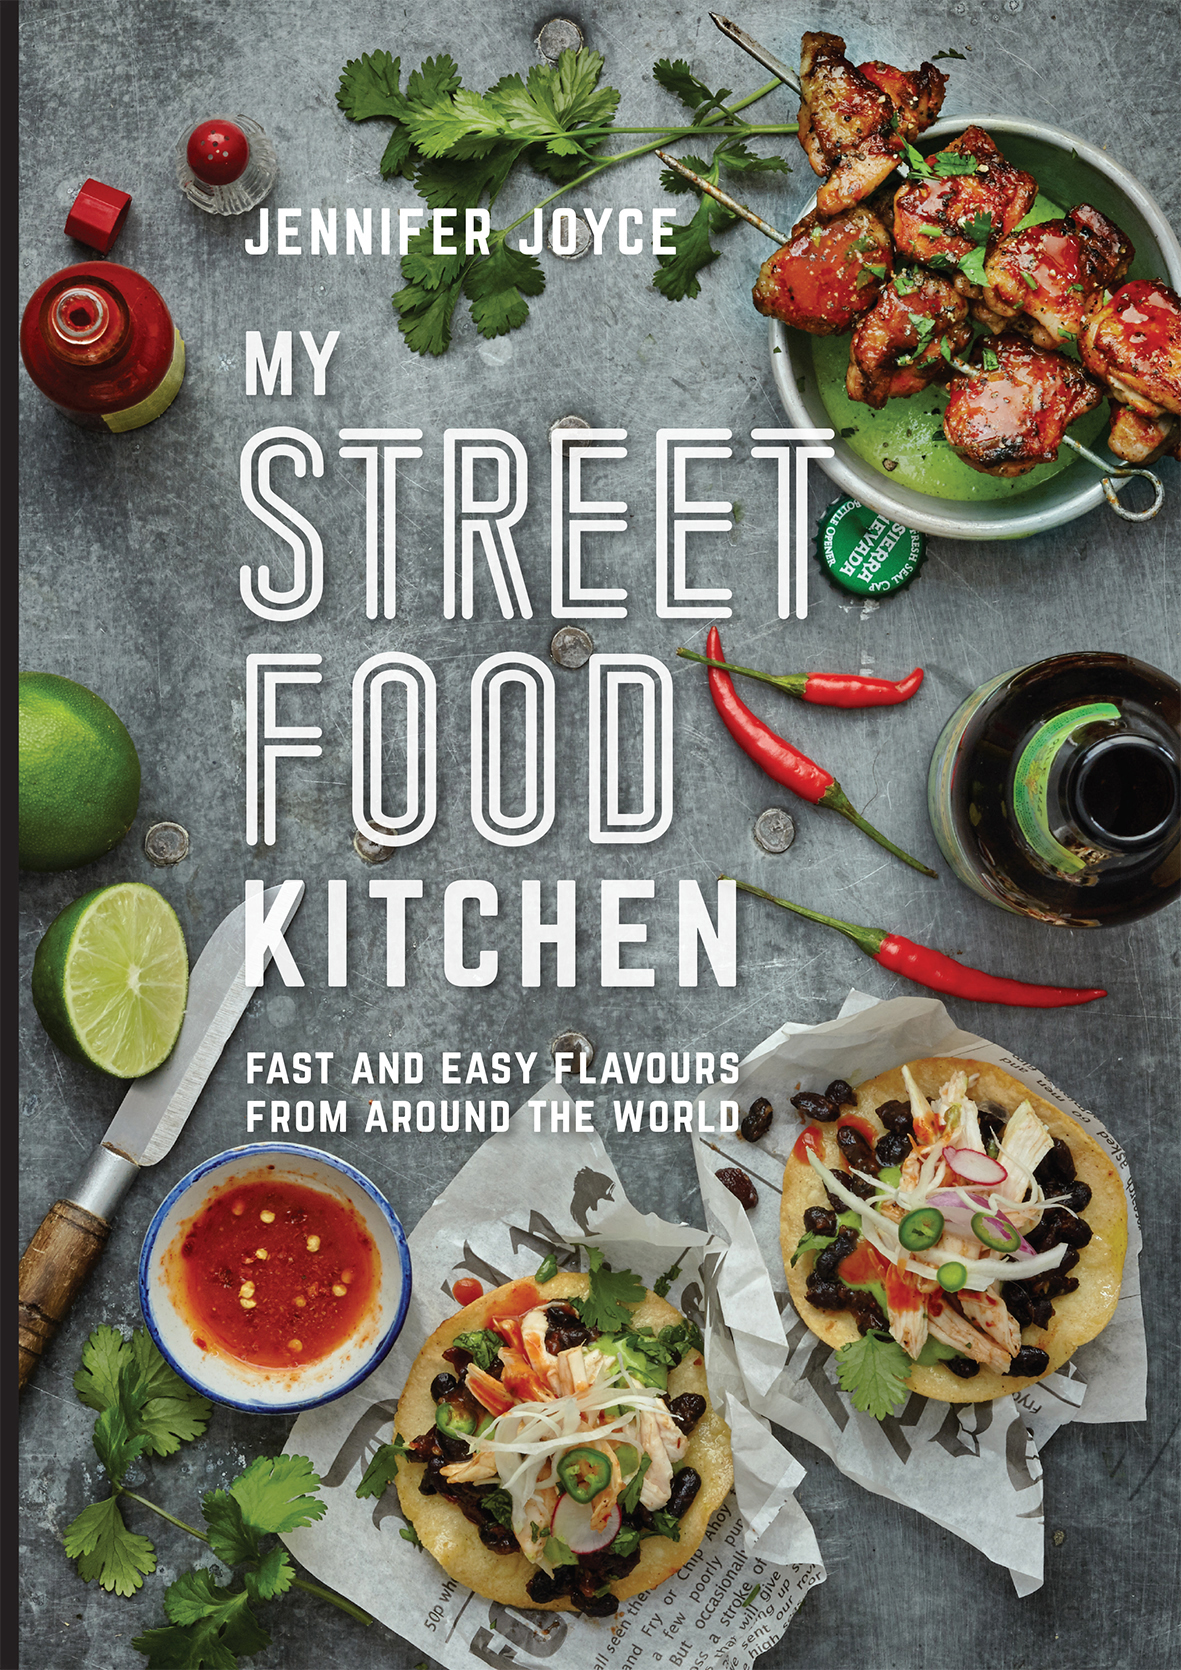 My street food kitchen jennifer joyce 9781743364185 allen download cover forumfinder Image collections